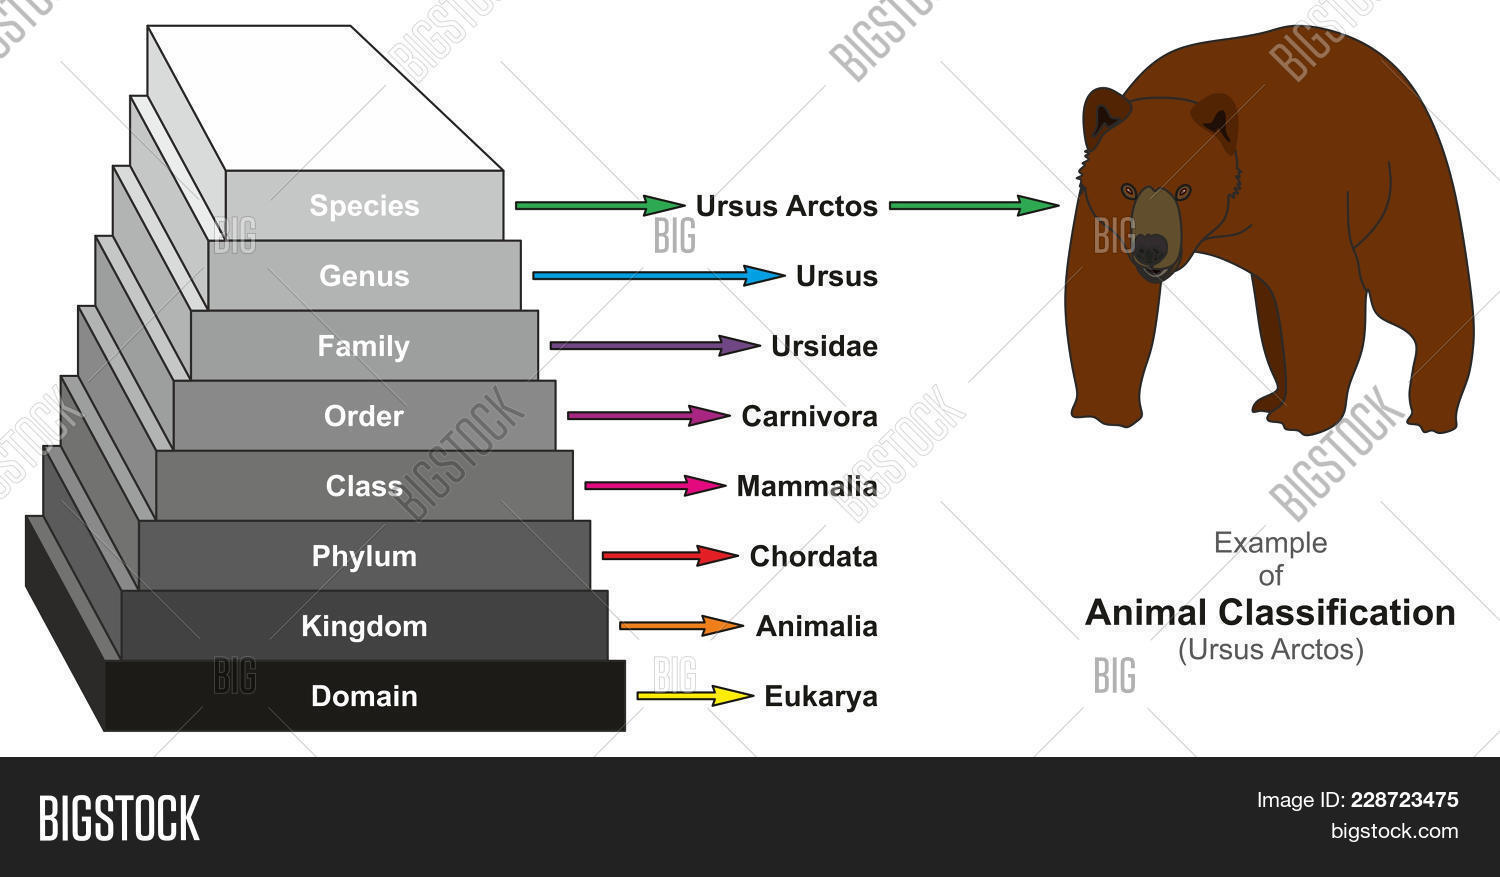 hight resolution of example of animal classification pyramid infographic diagram showing ursus arctos domain kingdom phylum class order family